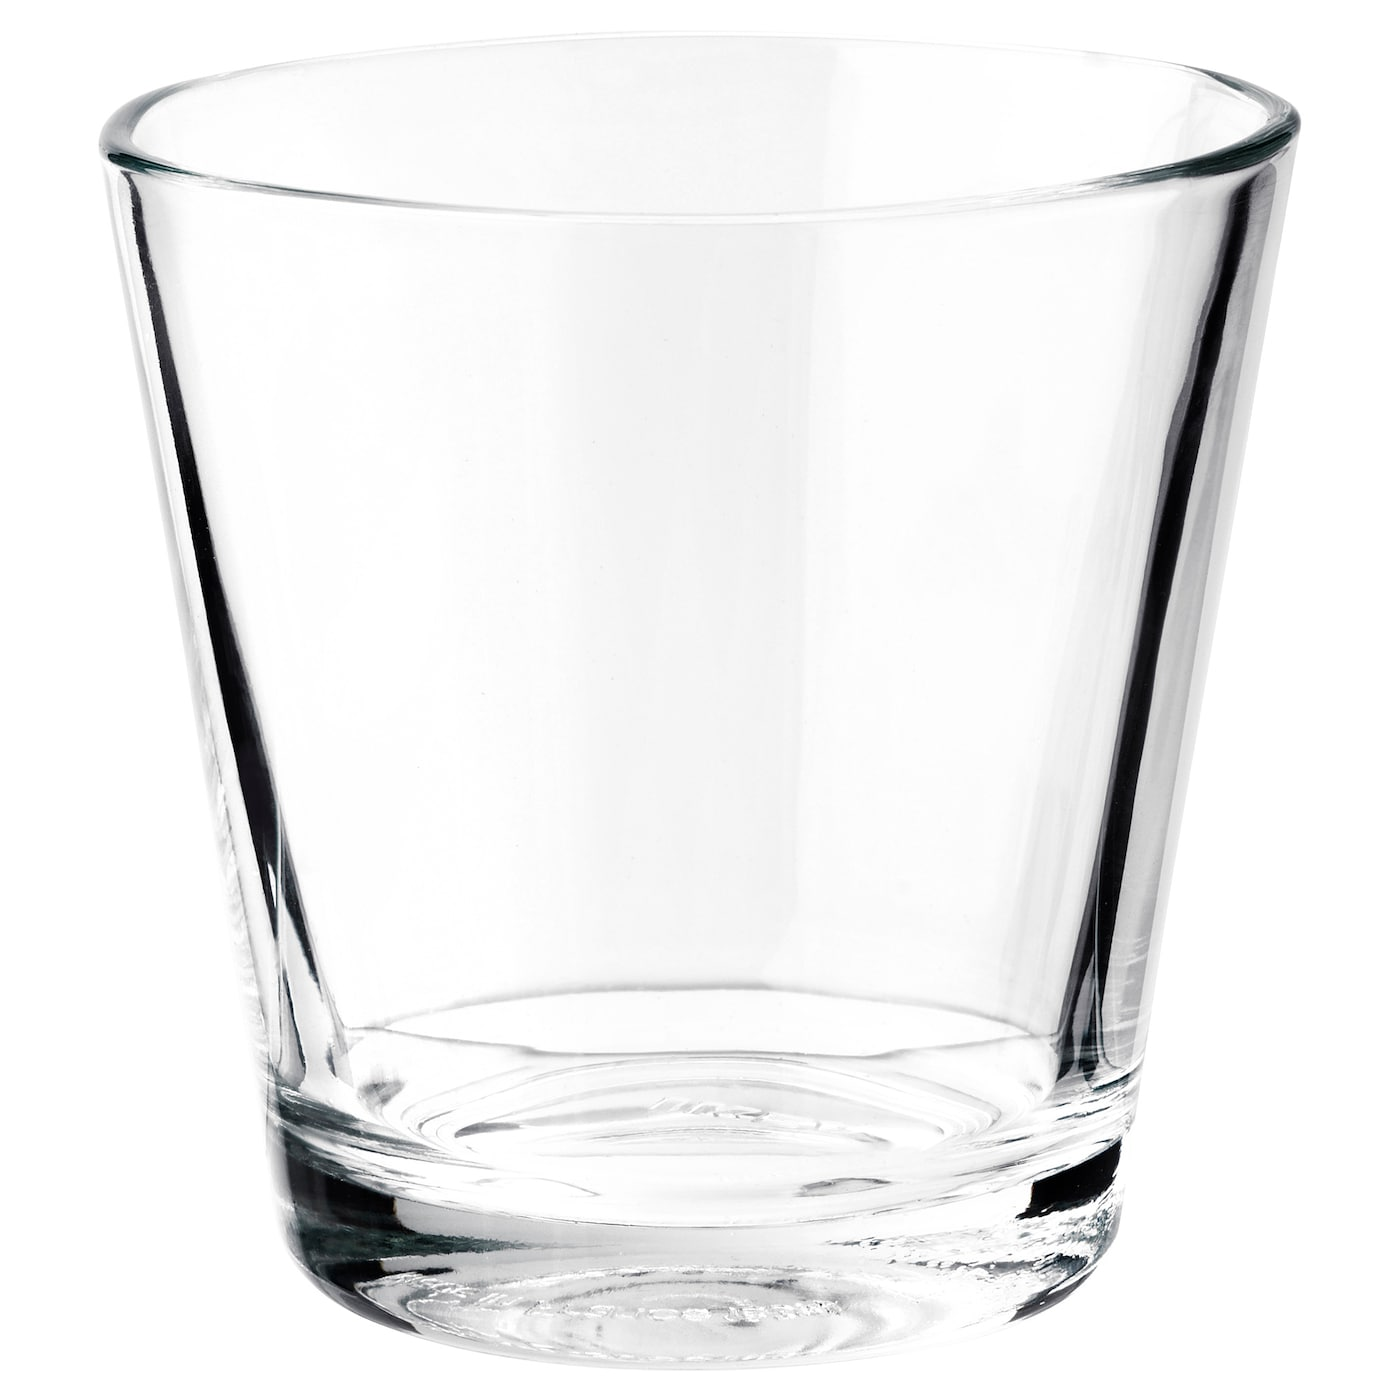 IKEA INDUSTRIELL glass